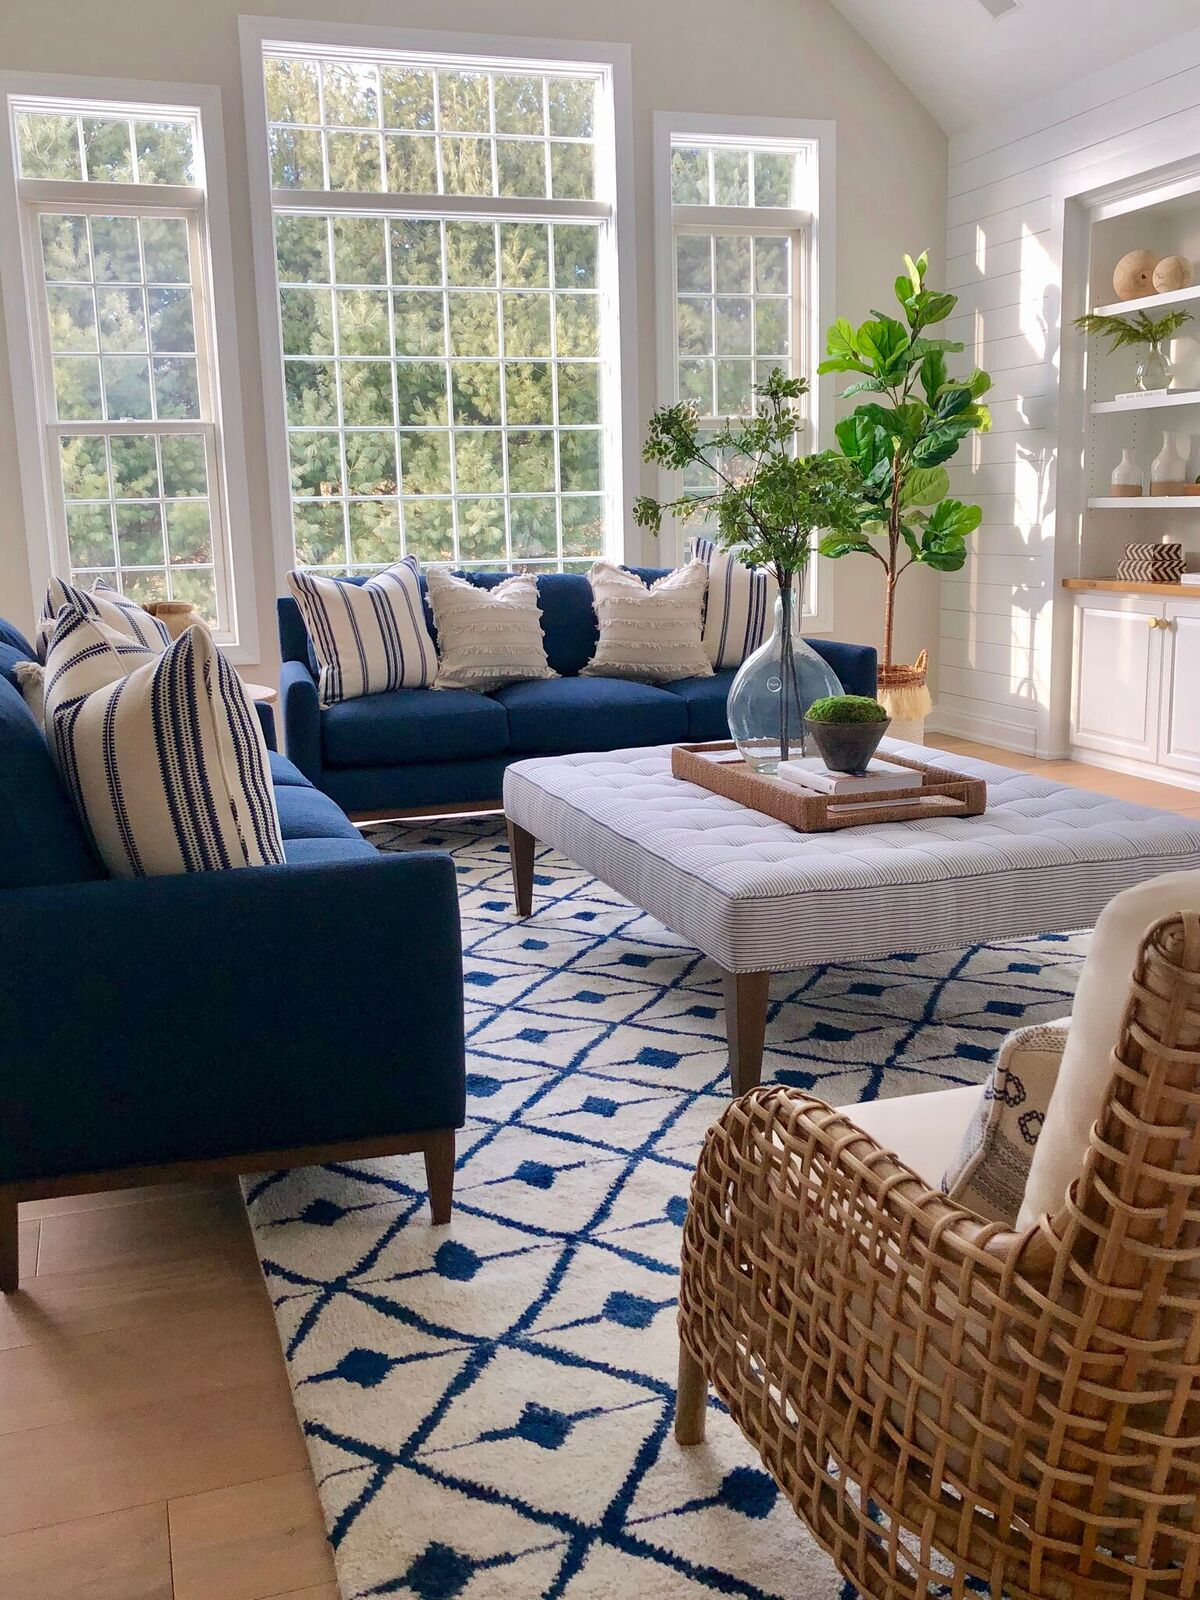 stephanie-kraus-designs-mainline-pa-family-room-project-after-rug-chairs.jpg